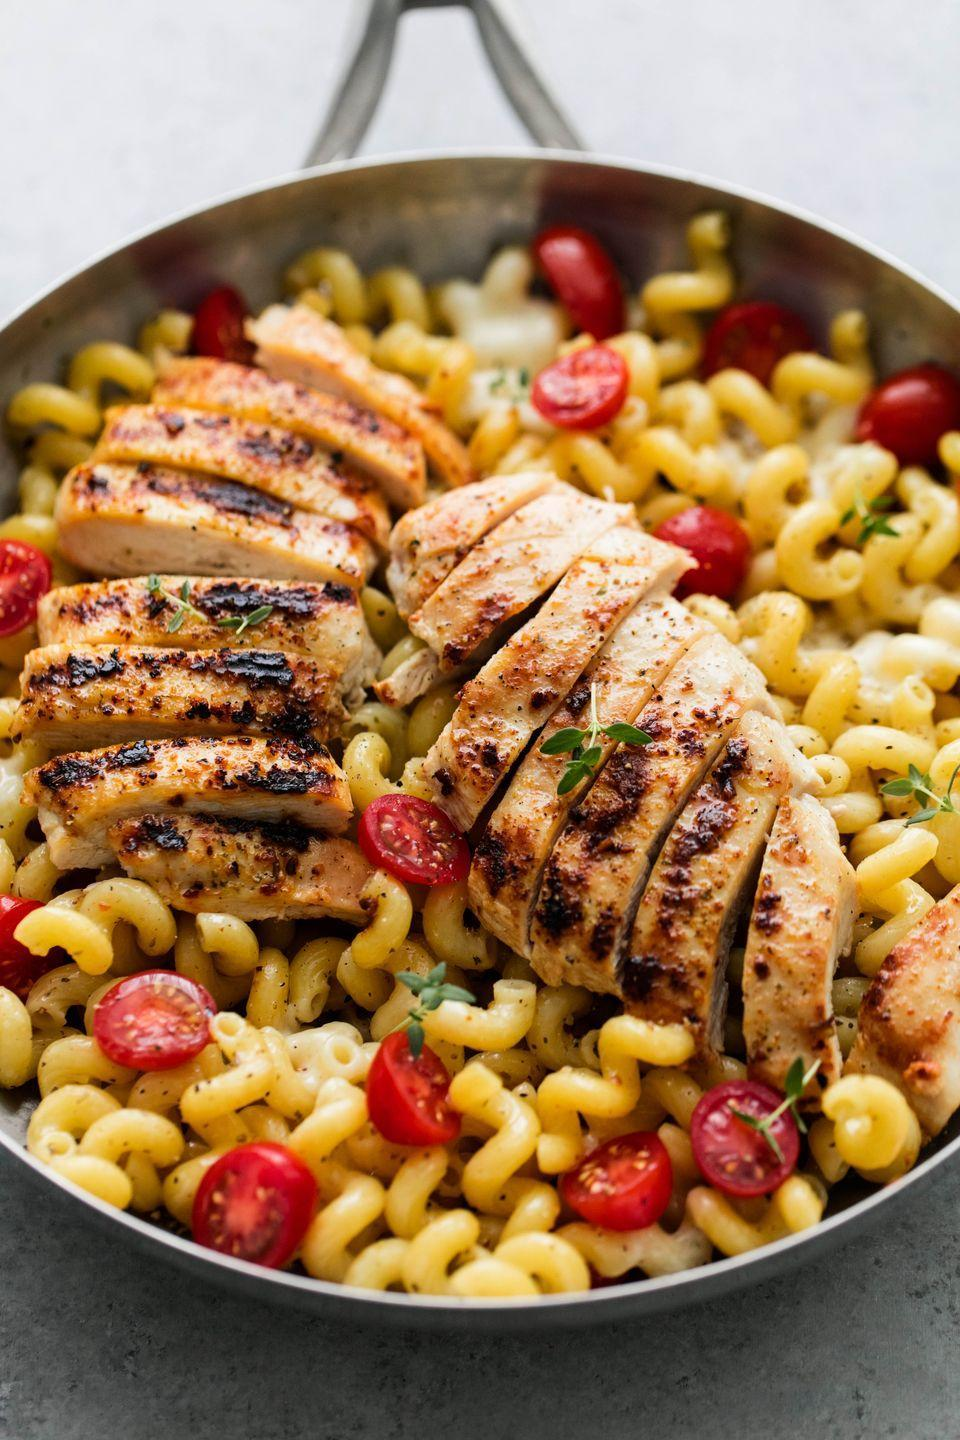 """<p>Two power couples here: chicken and pasta + tomato and mozz.</p><p>Get the recipe from <a href=""""https://www.delish.com/cooking/recipe-ideas/recipes/a52046/caprese-chicken-pasta-recipe/"""" rel=""""nofollow noopener"""" target=""""_blank"""" data-ylk=""""slk:Delish"""" class=""""link rapid-noclick-resp"""">Delish</a>.</p>"""